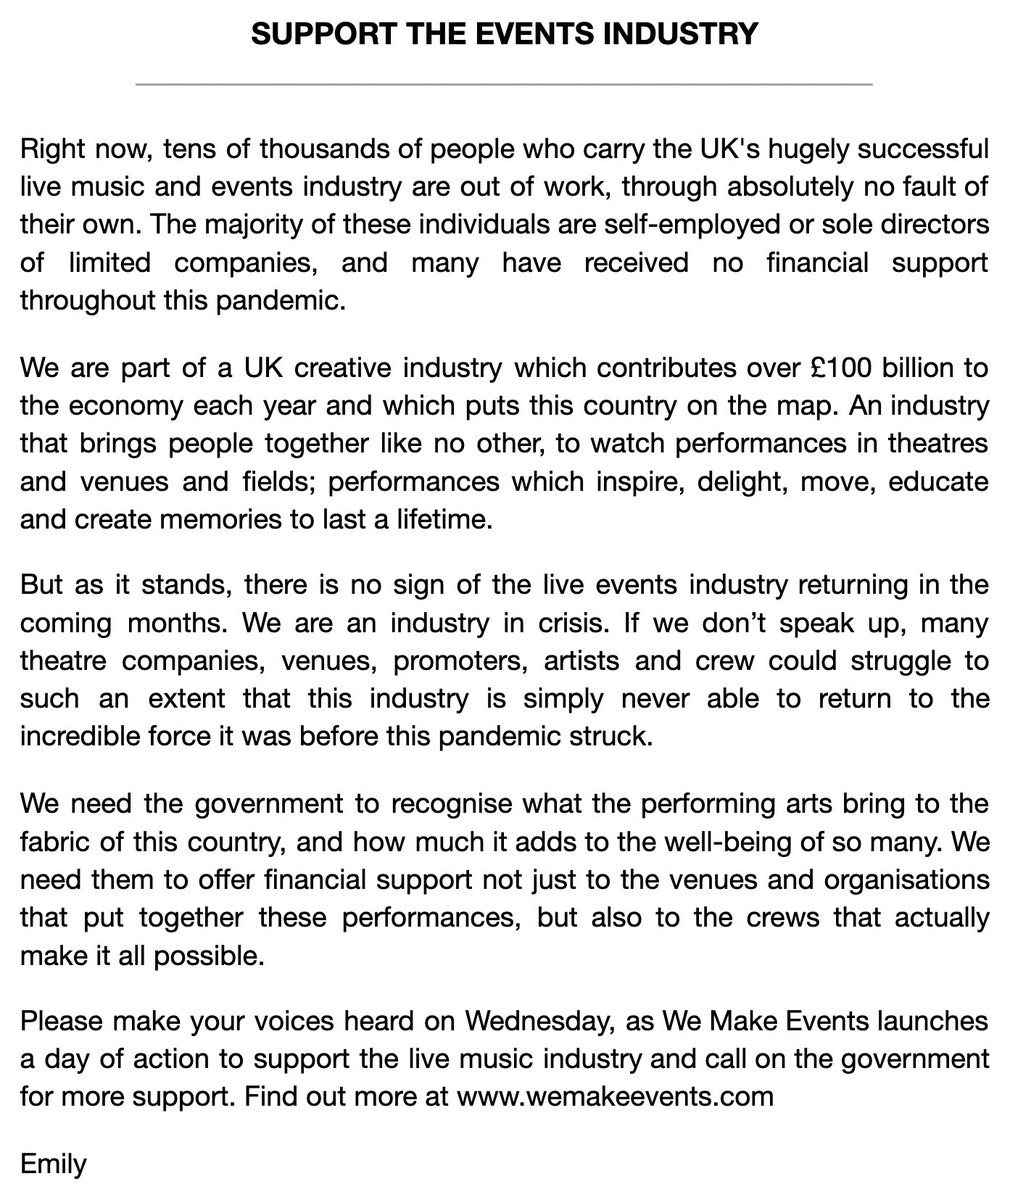 Emily Eavis said it perfectly below. The live music and events industry has been devastated. We urge the UK government to support all crew and staff who have lost their livelihoods. Love c, g, w, j & p #WeMakeEvents